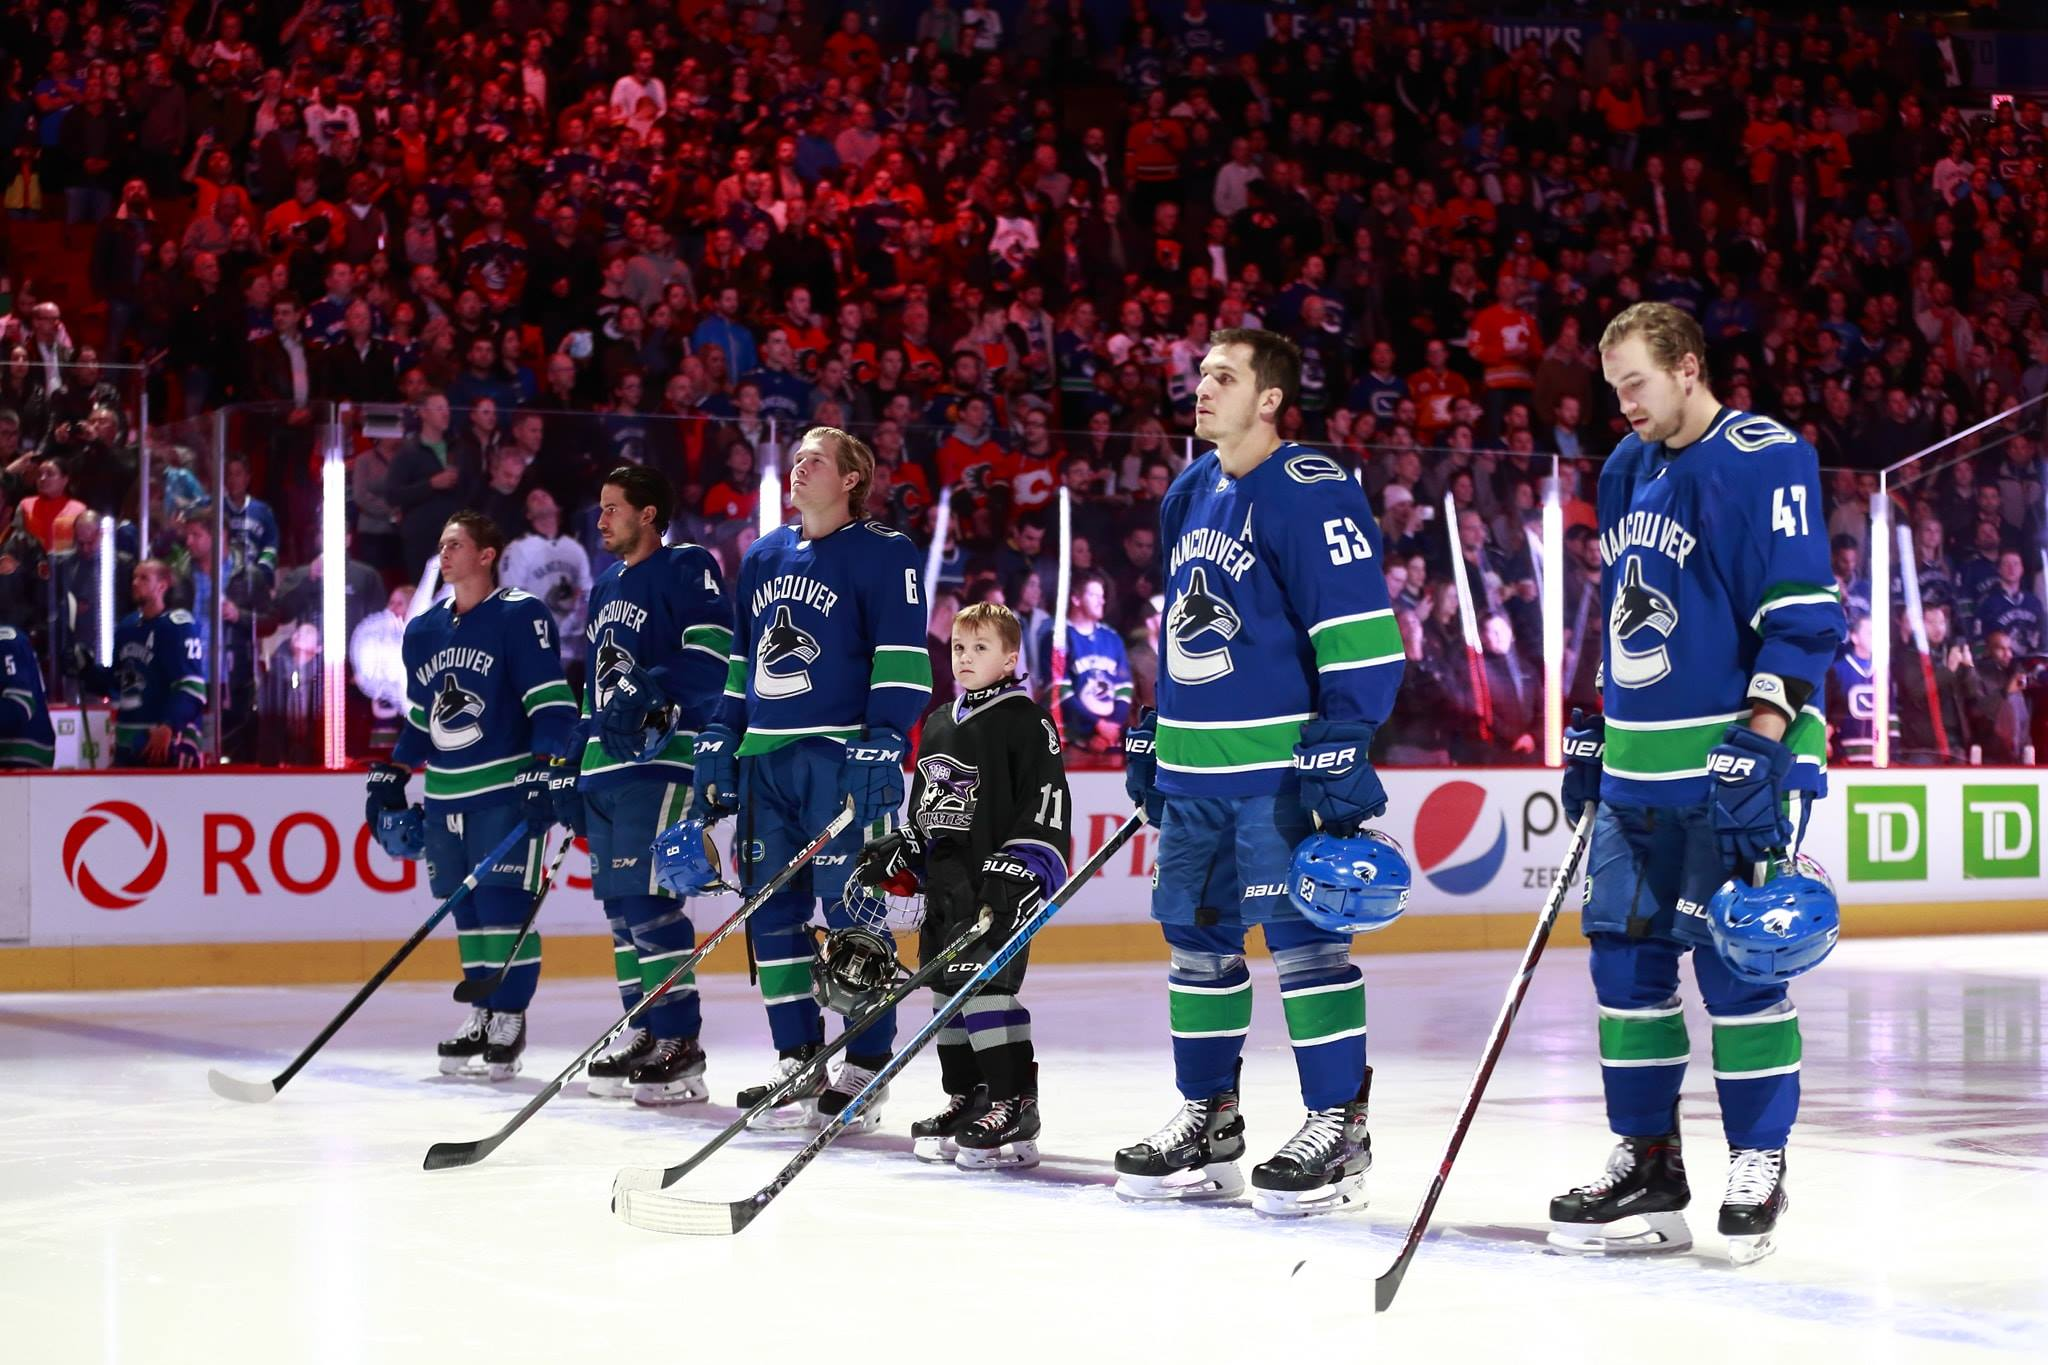 PoCo Pirate's Cash Elliot with the Canucks!